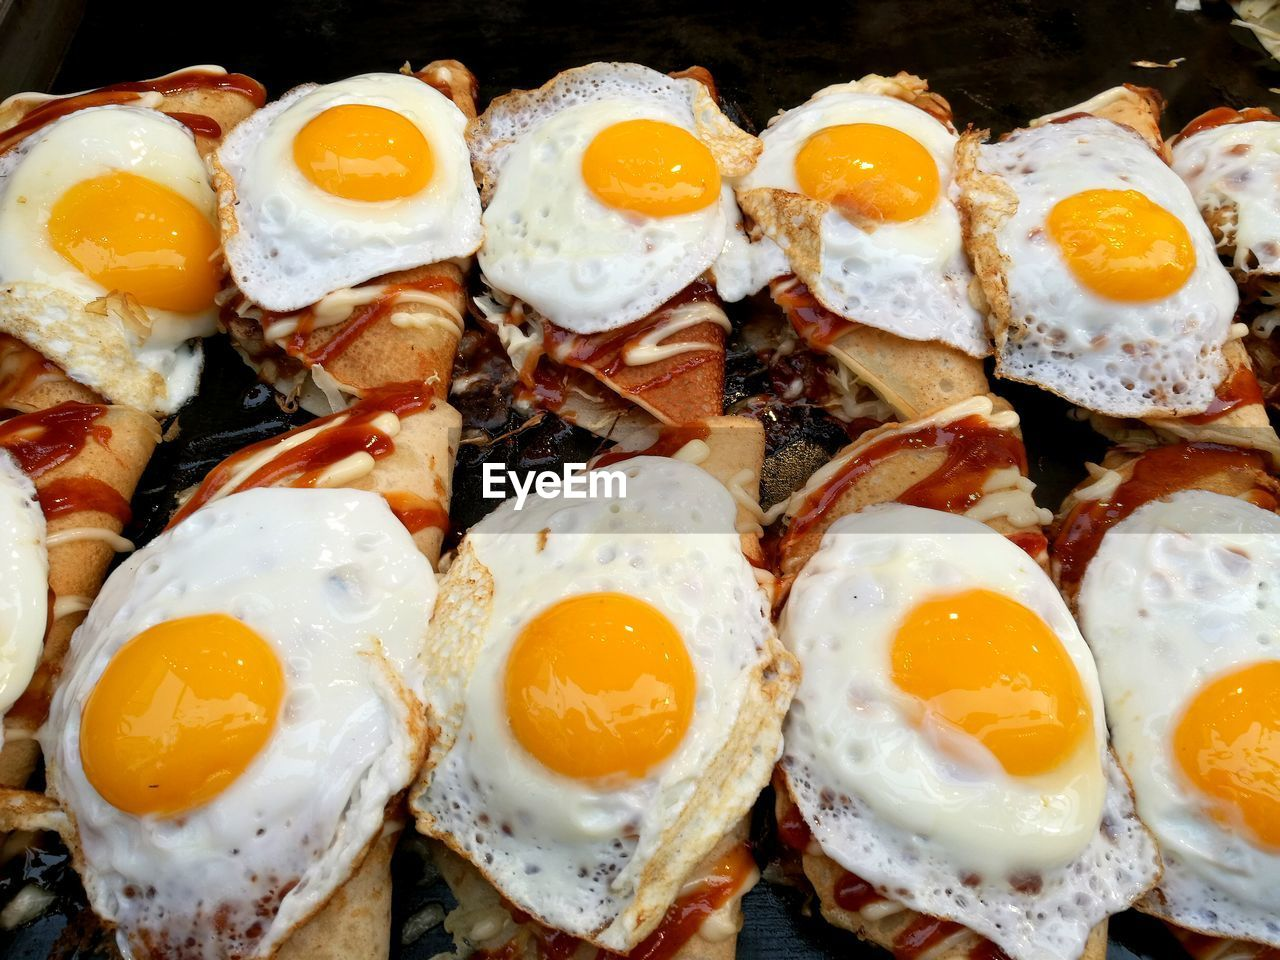 food and drink, food, freshness, healthy eating, wellbeing, ready-to-eat, egg, close-up, still life, no people, fried egg, fried, indoors, meal, indulgence, egg yolk, breakfast, meat, serving size, high angle view, temptation, sunny side up, snack, japanese food